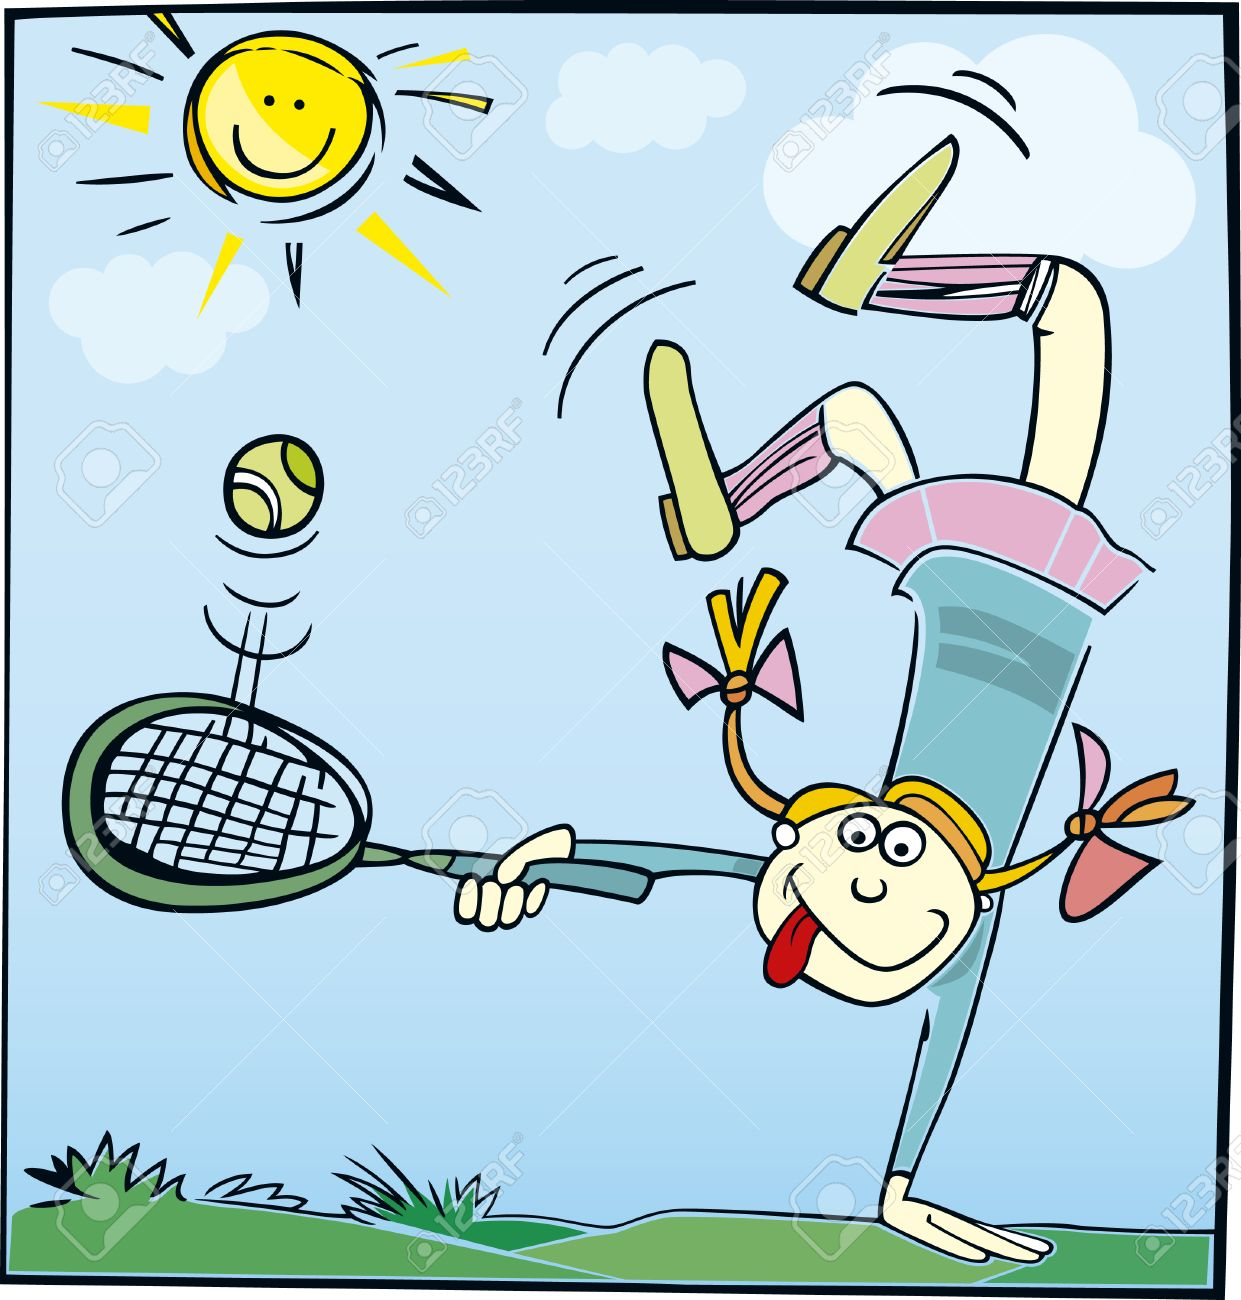 funny little girl playing tennis.